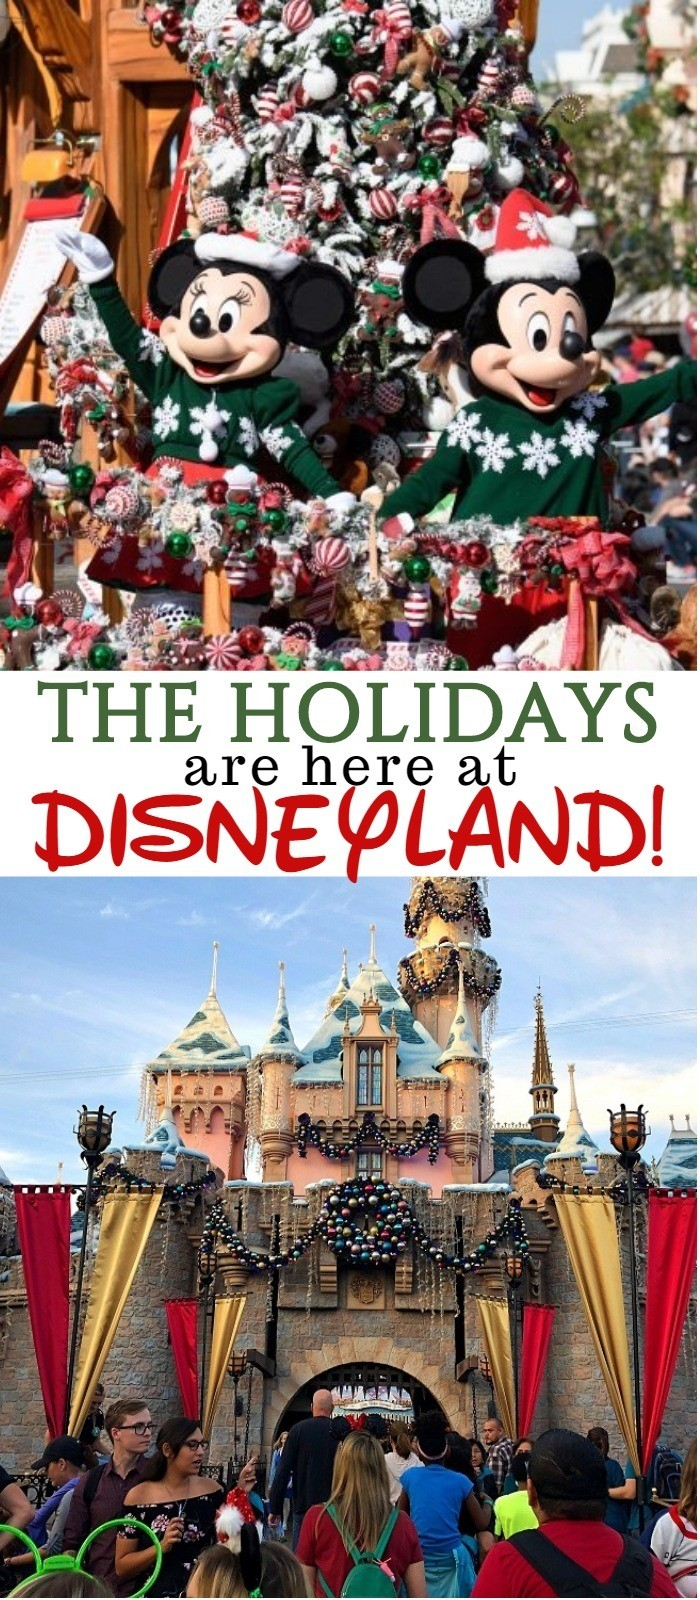 Christmas Time At Disneyland - Experience The Magic Of Disneyland Holidays!